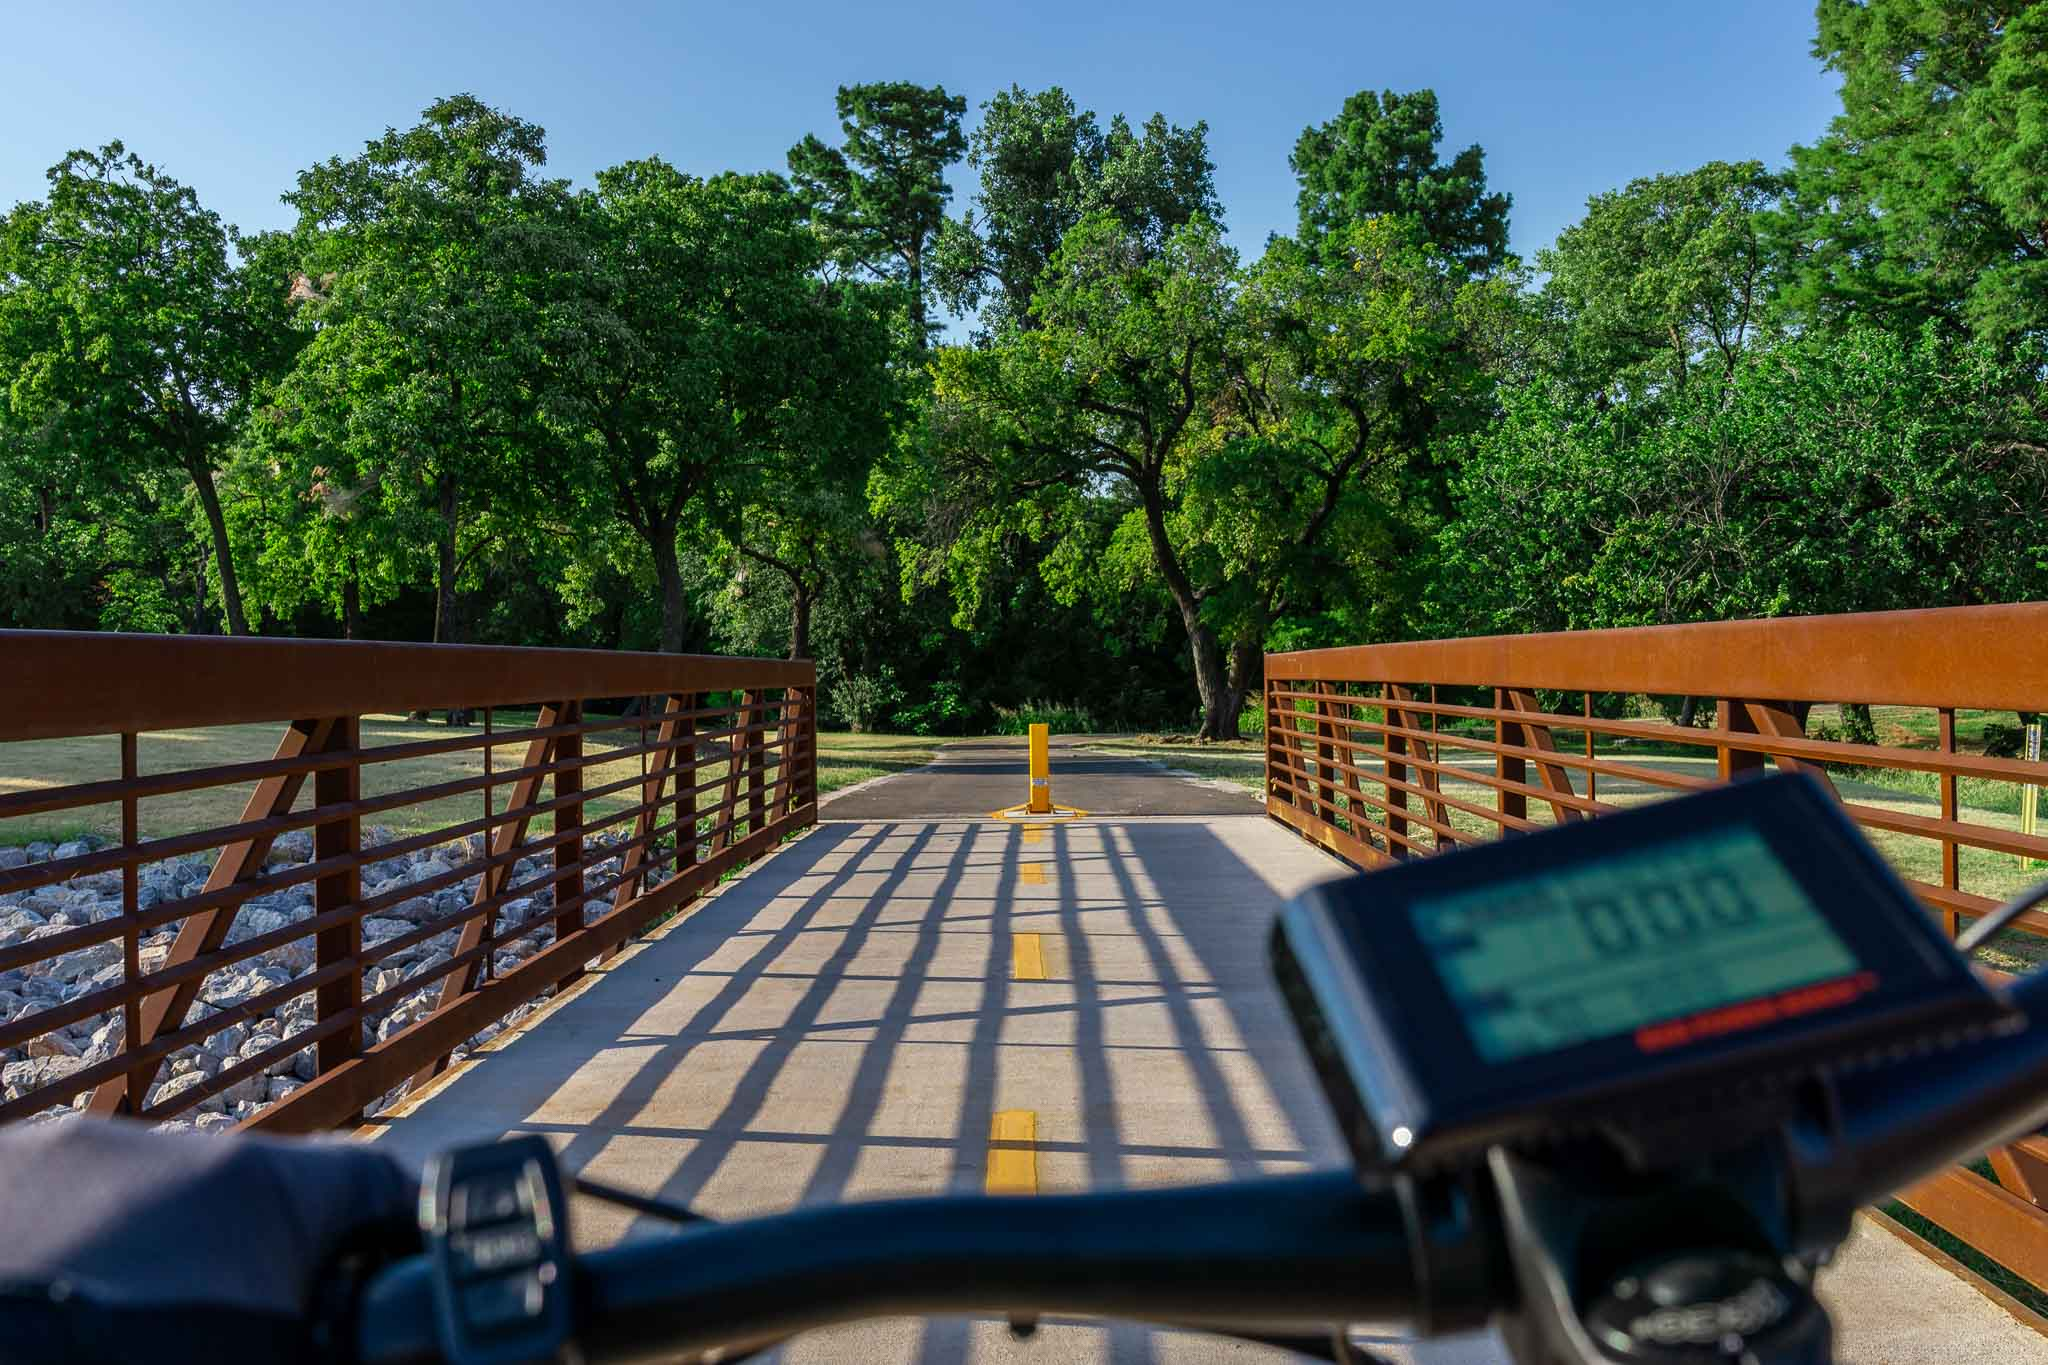 OKC Bike Trails